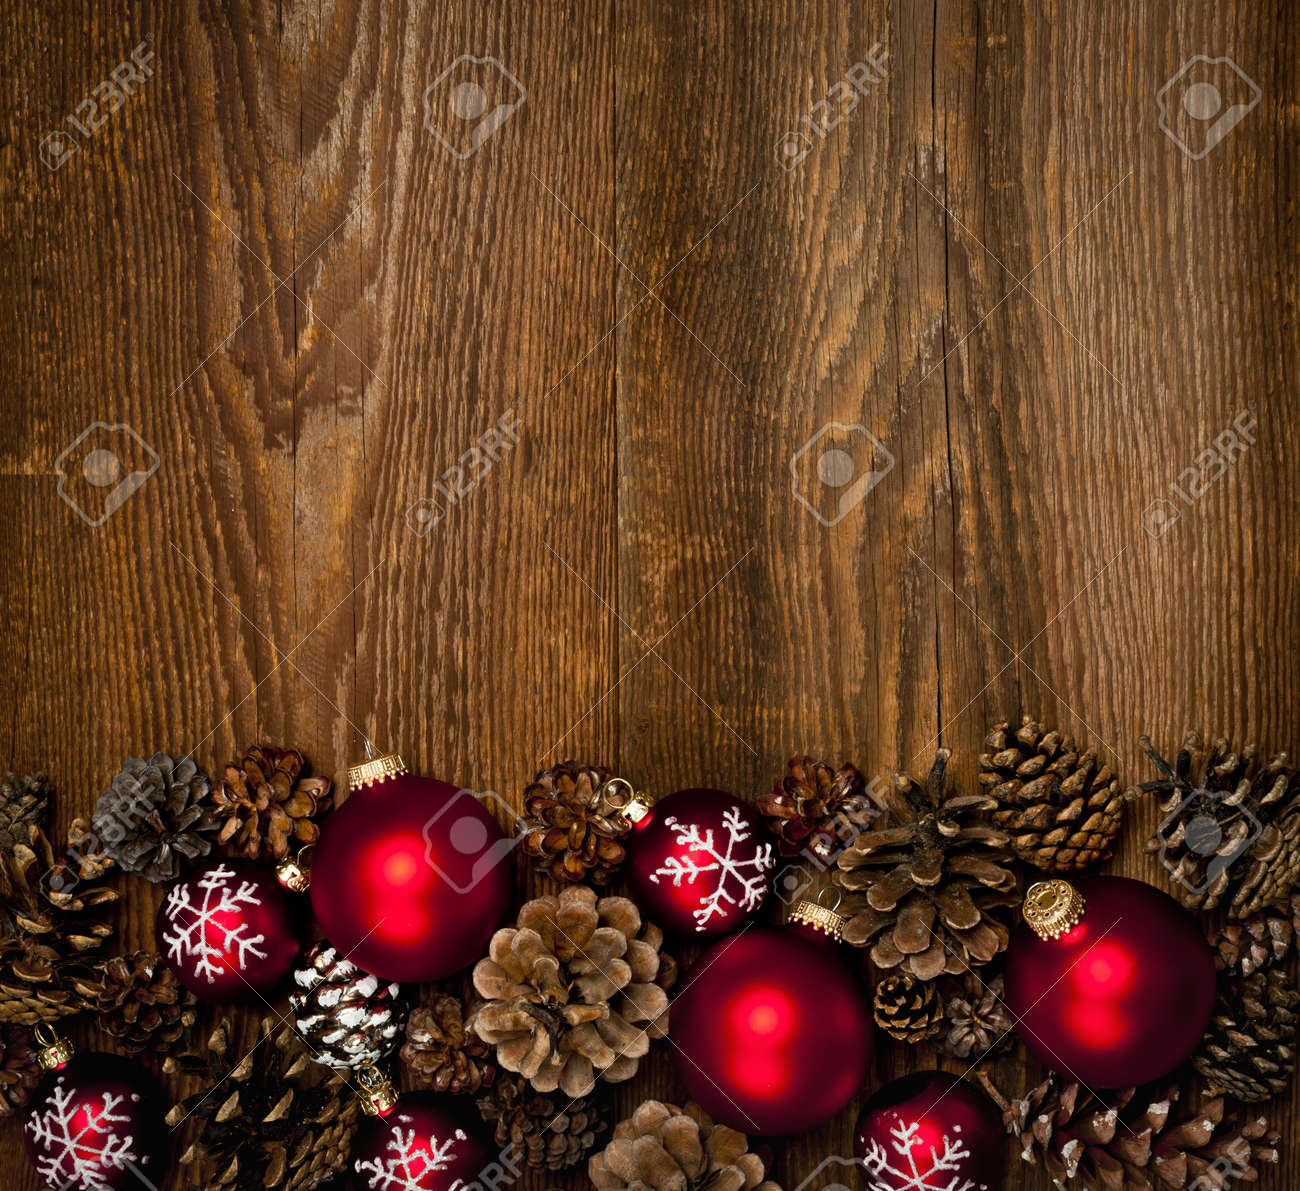 Rustic Wood Background With Christmas Ornaments And Pine Cones Stock Photo